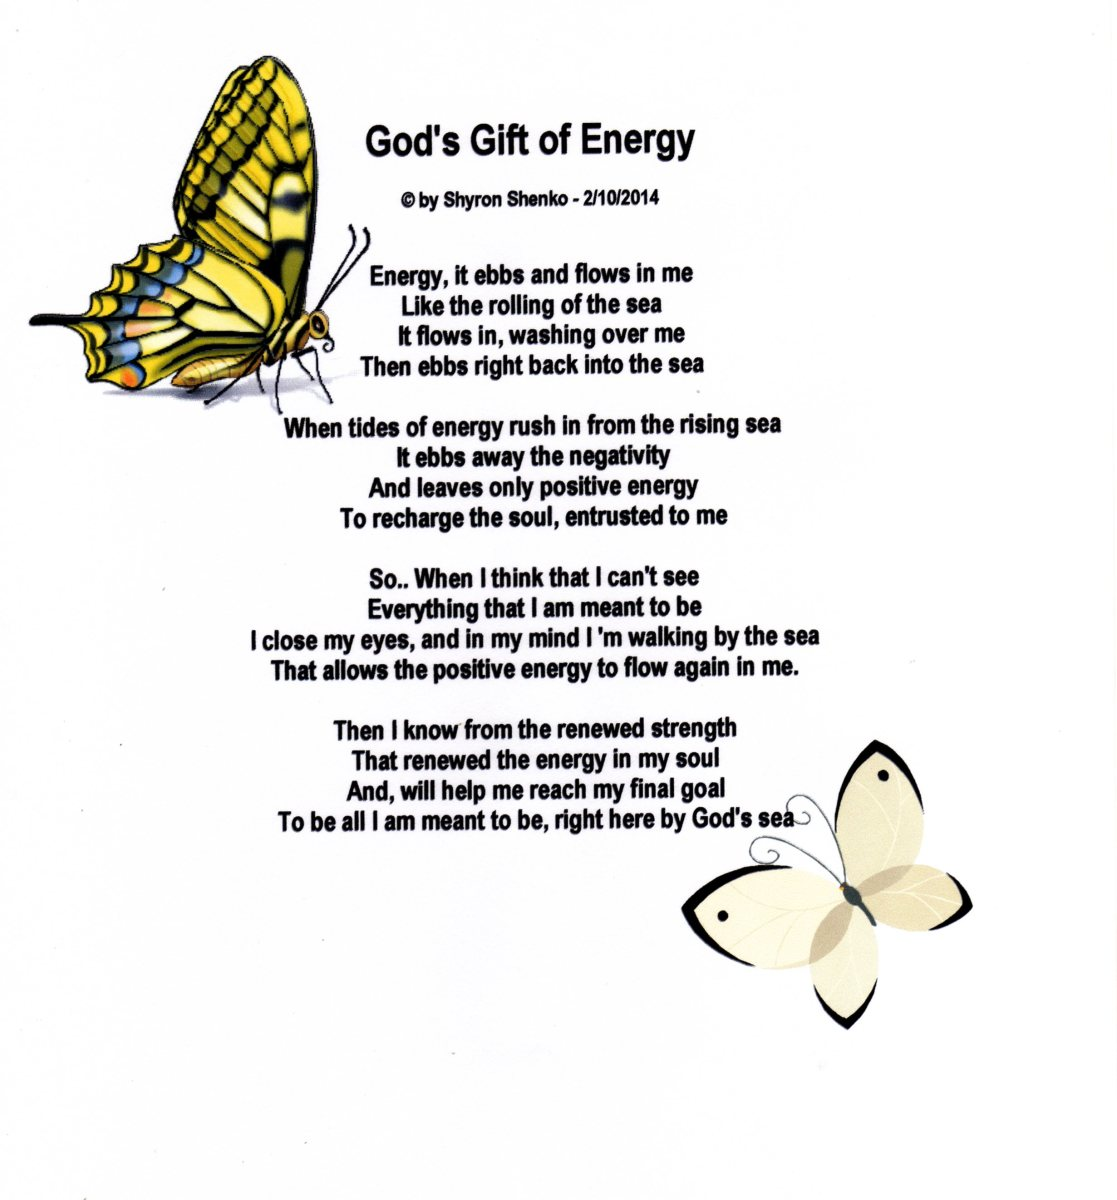 Energy - God's Gift of Energy! (Poem)